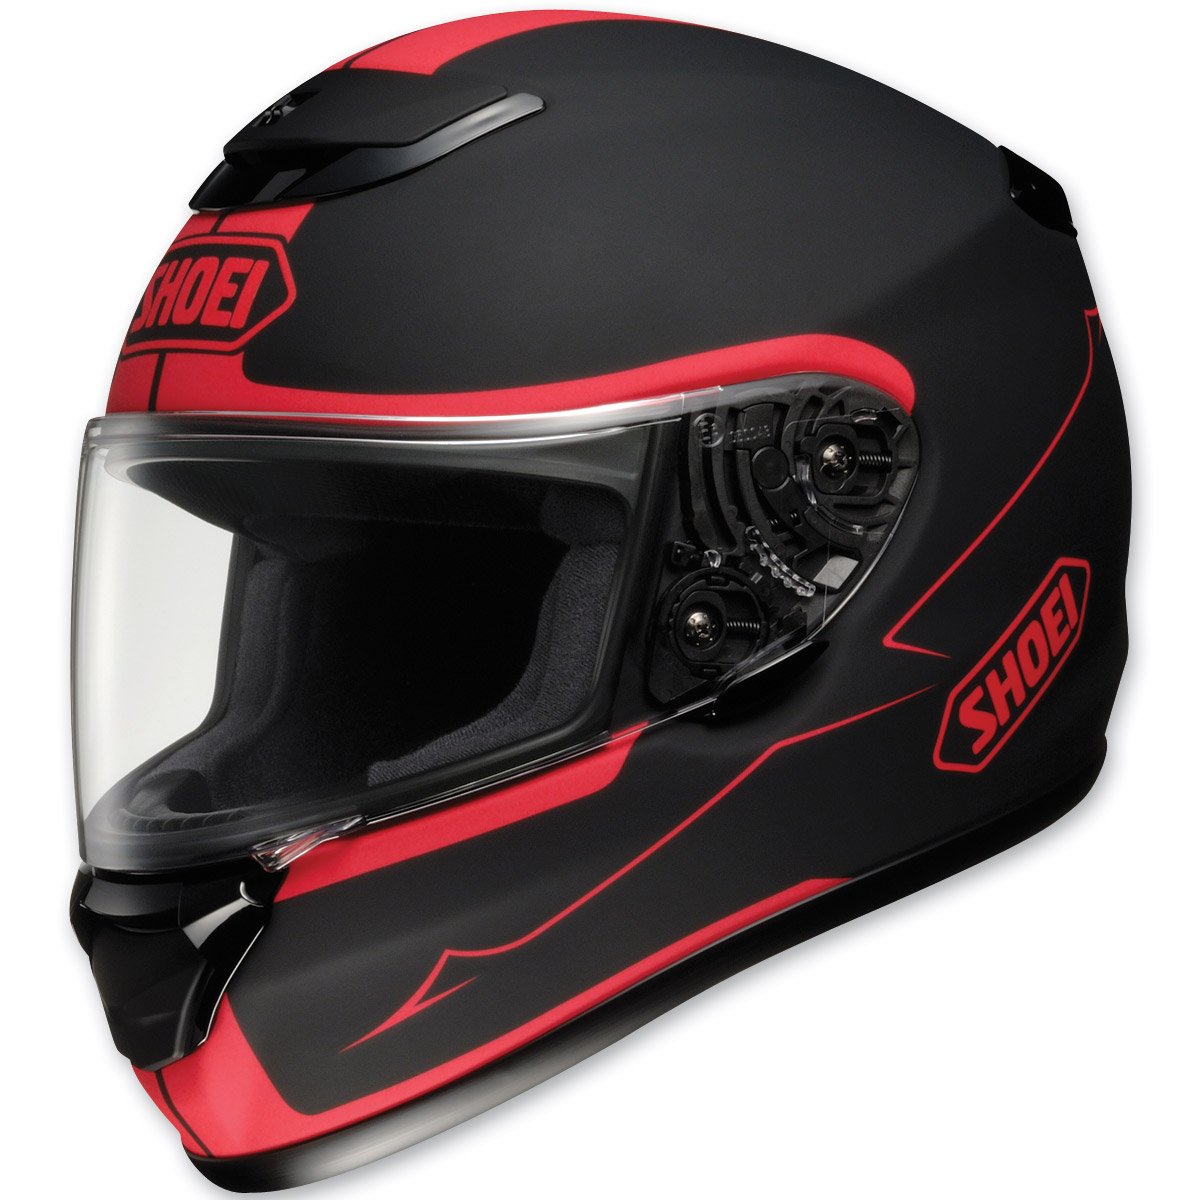 Shoei Qwest Passage Black and Red Full Face Helmet